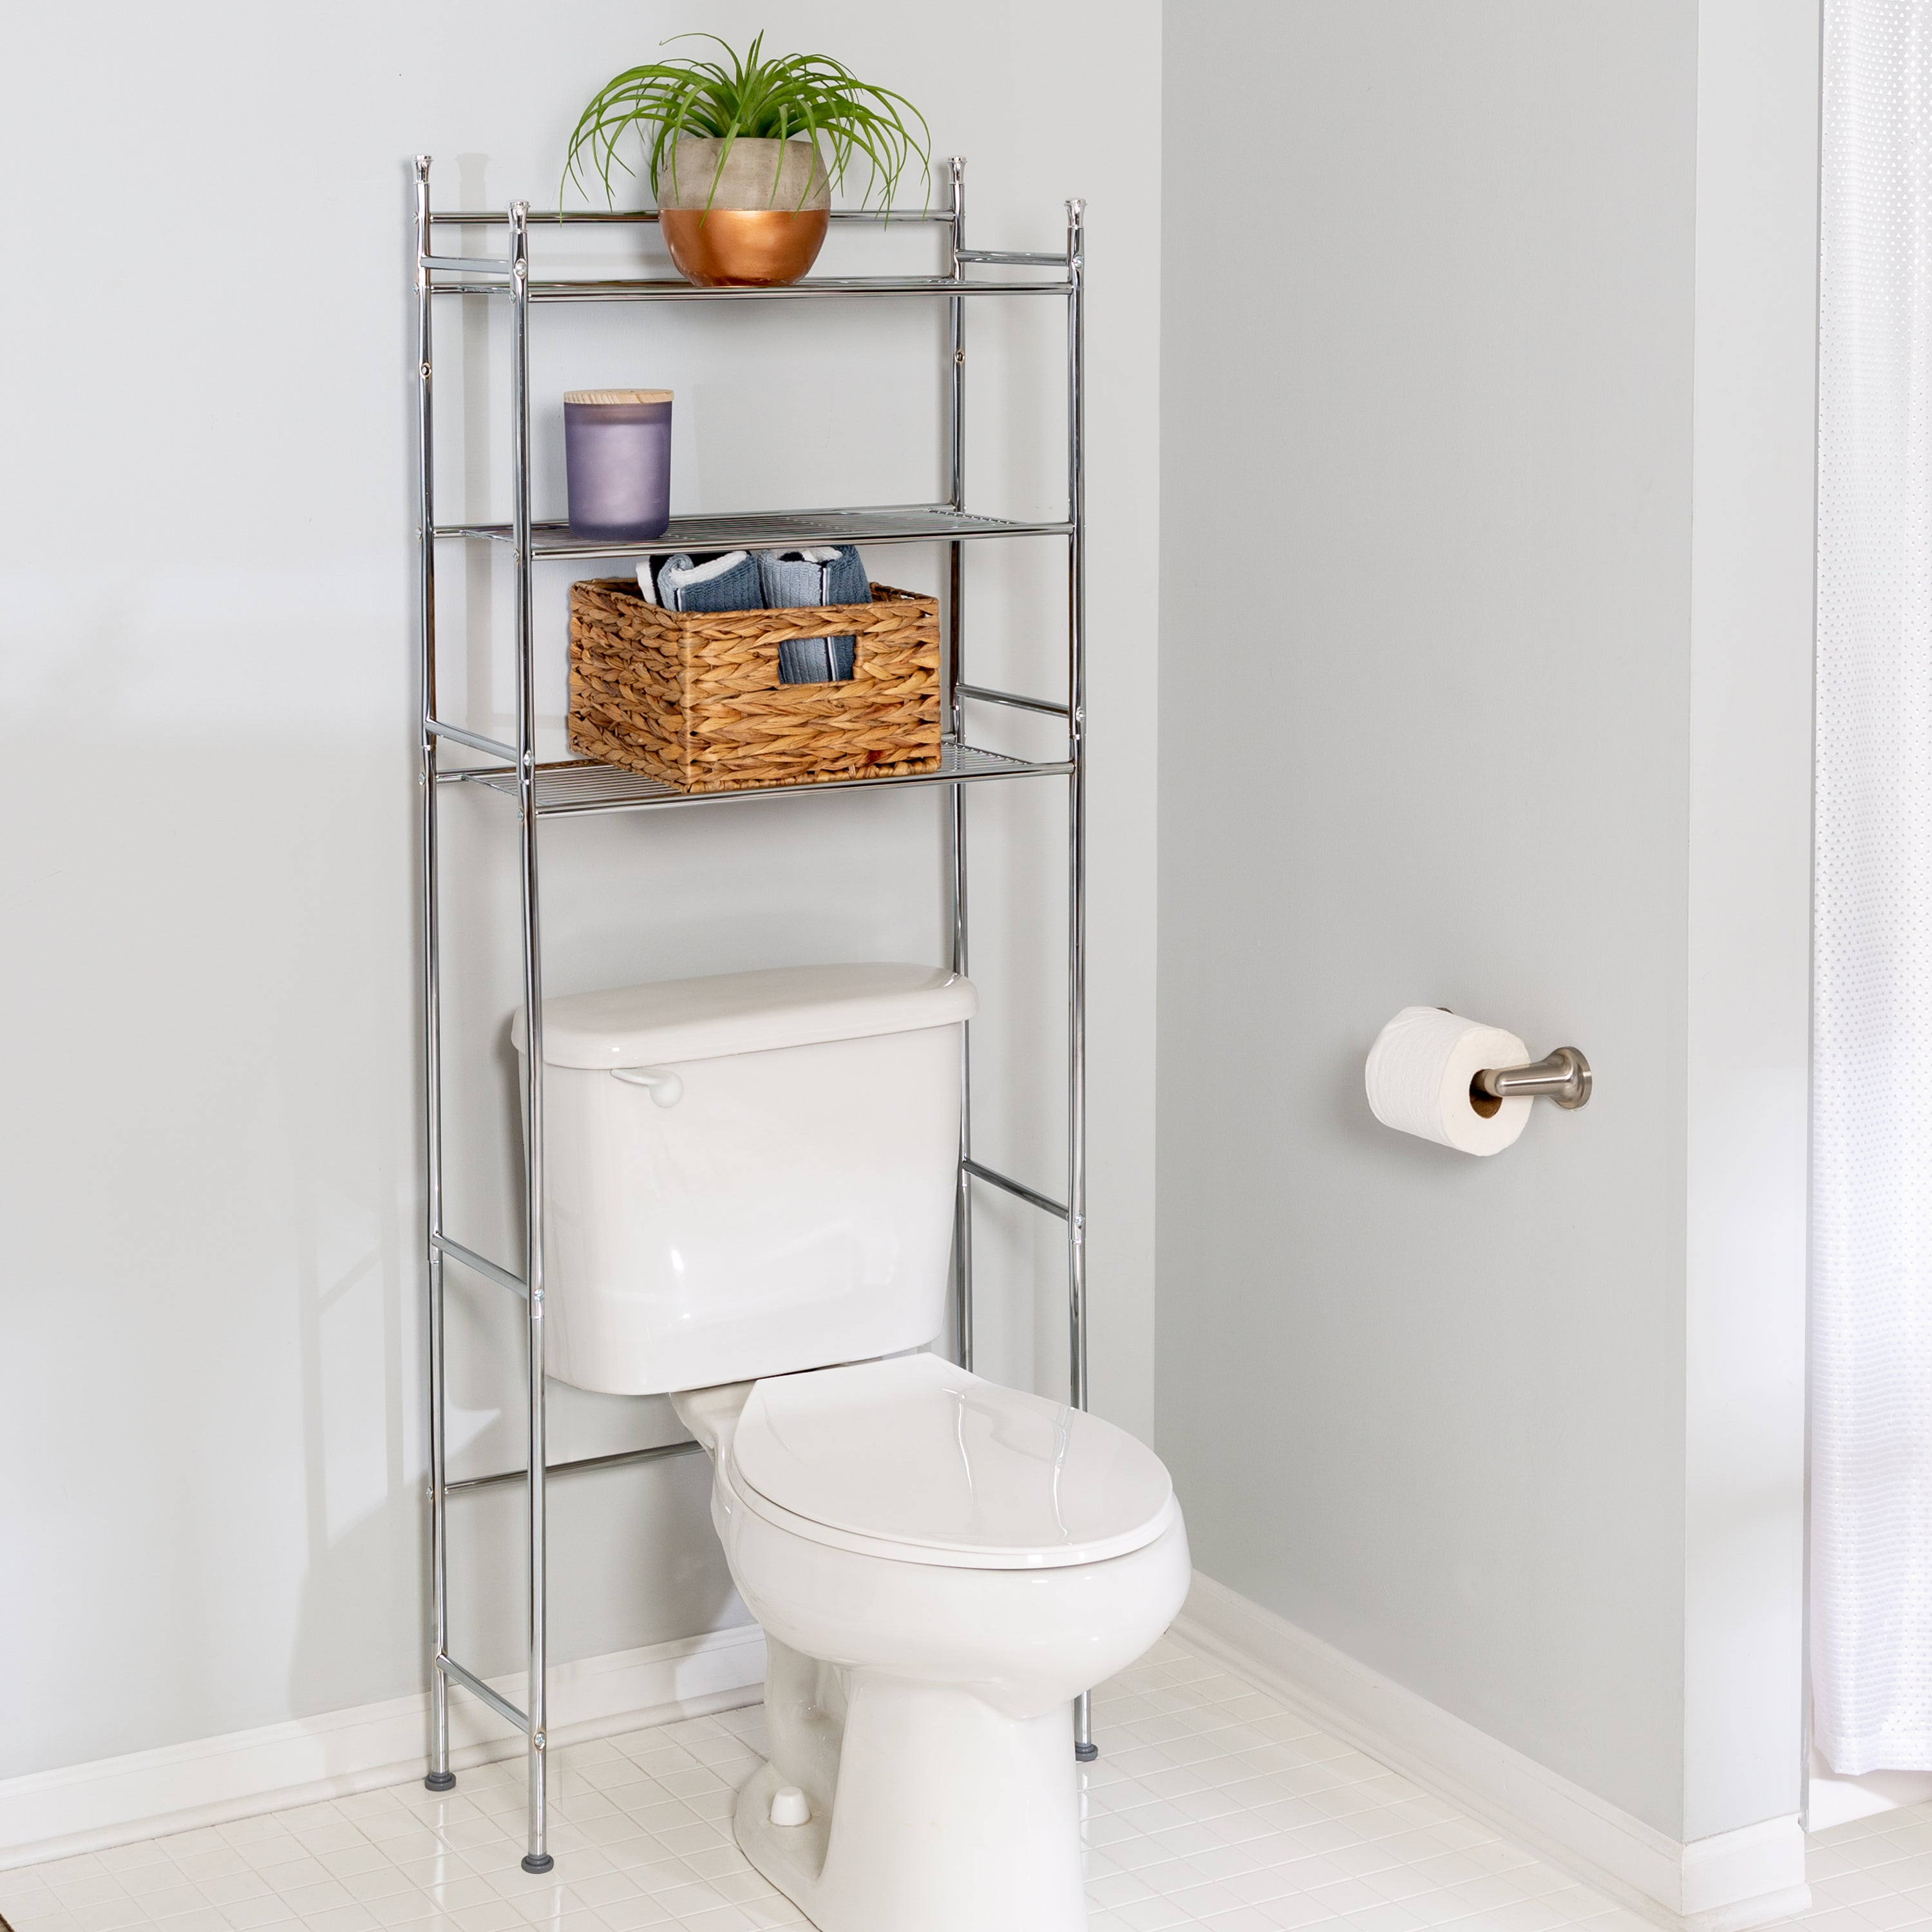 3 Tier Over The Toilet Shelving Unit Chrome